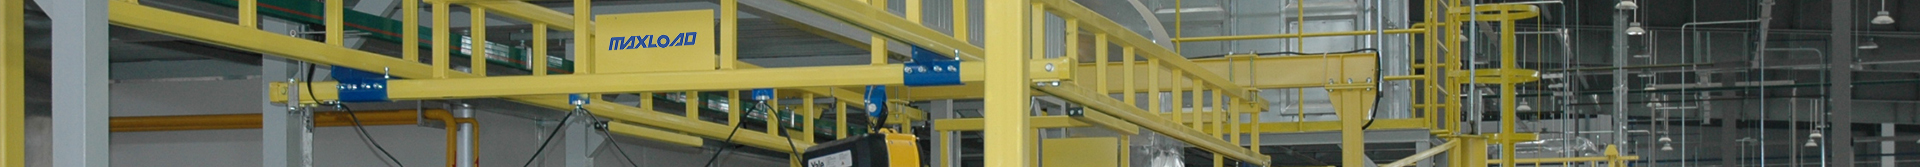 Electric Chain Hoist,Wire Rope Hoist,Jib Crane,Overhead Crane,Light Crane System,Shanghai Maxload Cranes & Hoists Co., Ltd.